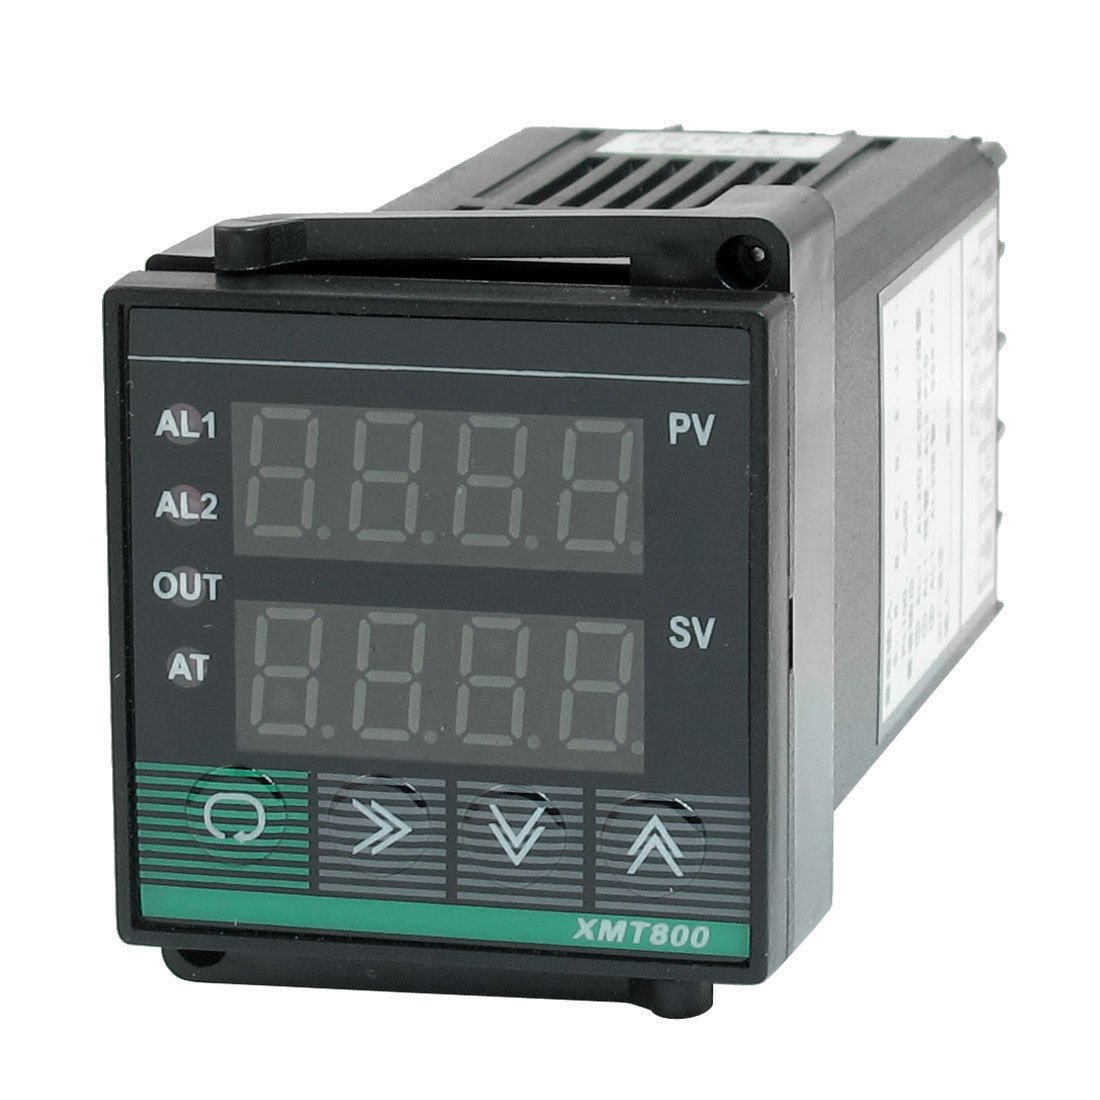 AC 115-285V SSR PID PV SV Display Digital Temperature Control Controller XMT800